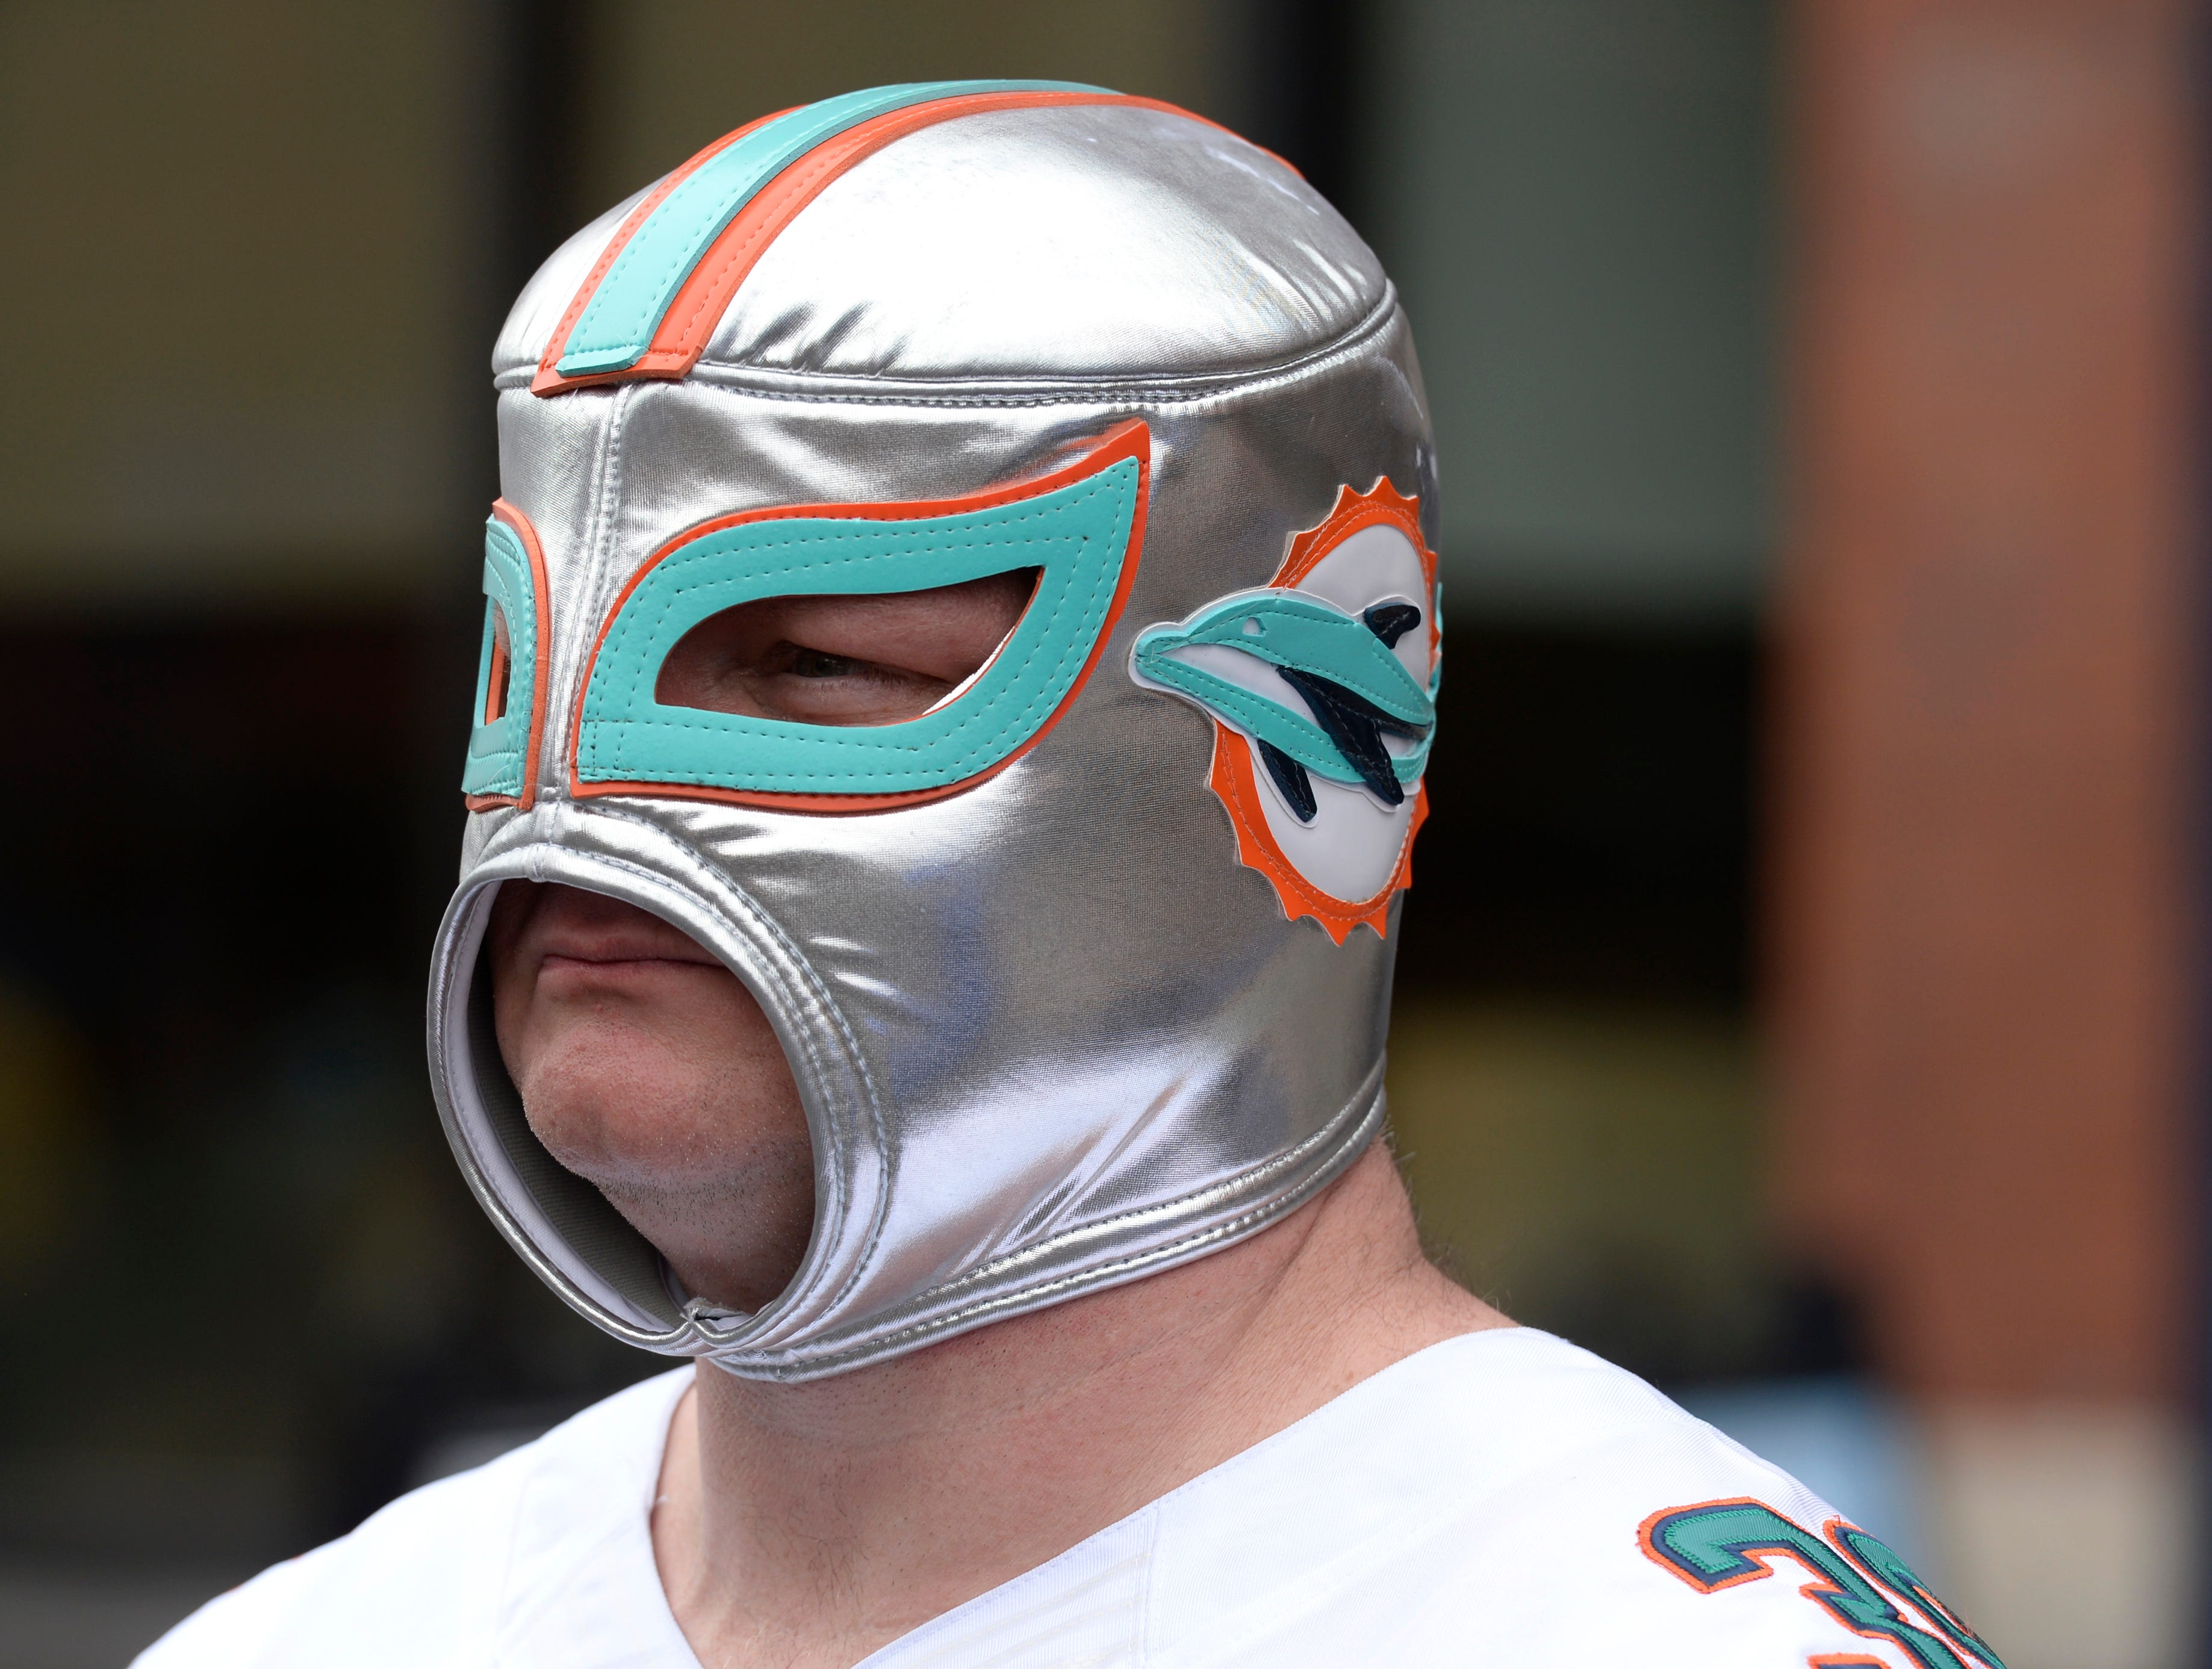 Dolphins fan Curtis McCurry walks along the Lower Broadway before the start of the 2019 NFL Draft in Nashville, Tenn., Thursday, April 25, 2019.